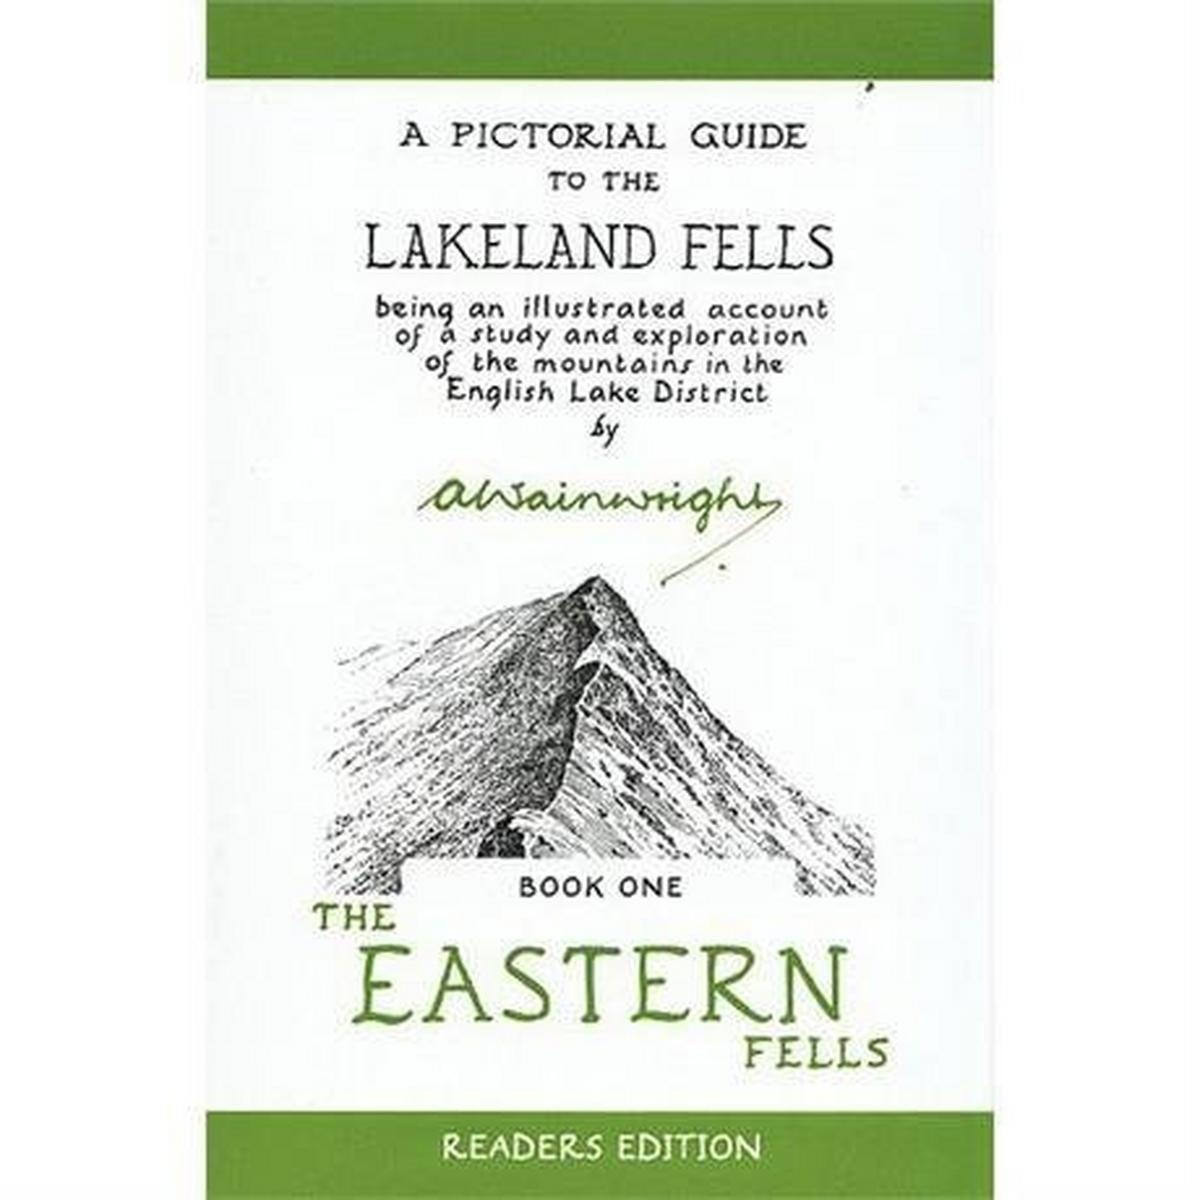 Miscellaneous Wainwright Book 1 The Eastern Fells: Readers Edition